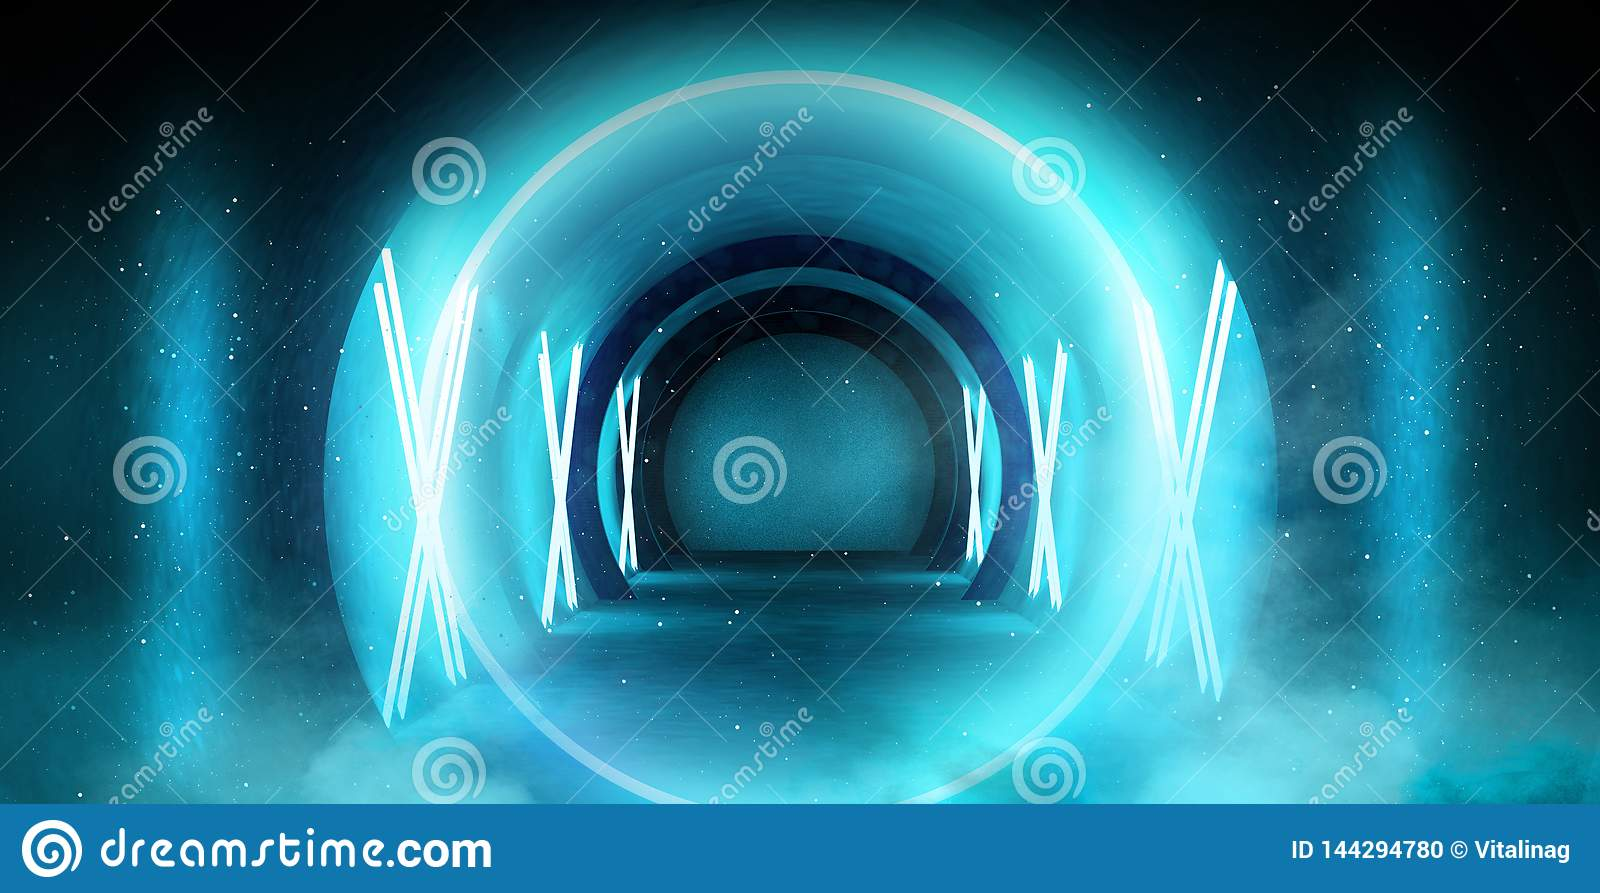 Abstract tunnel, corridor with rays of light and new highlights. Abstract blue background, neon.